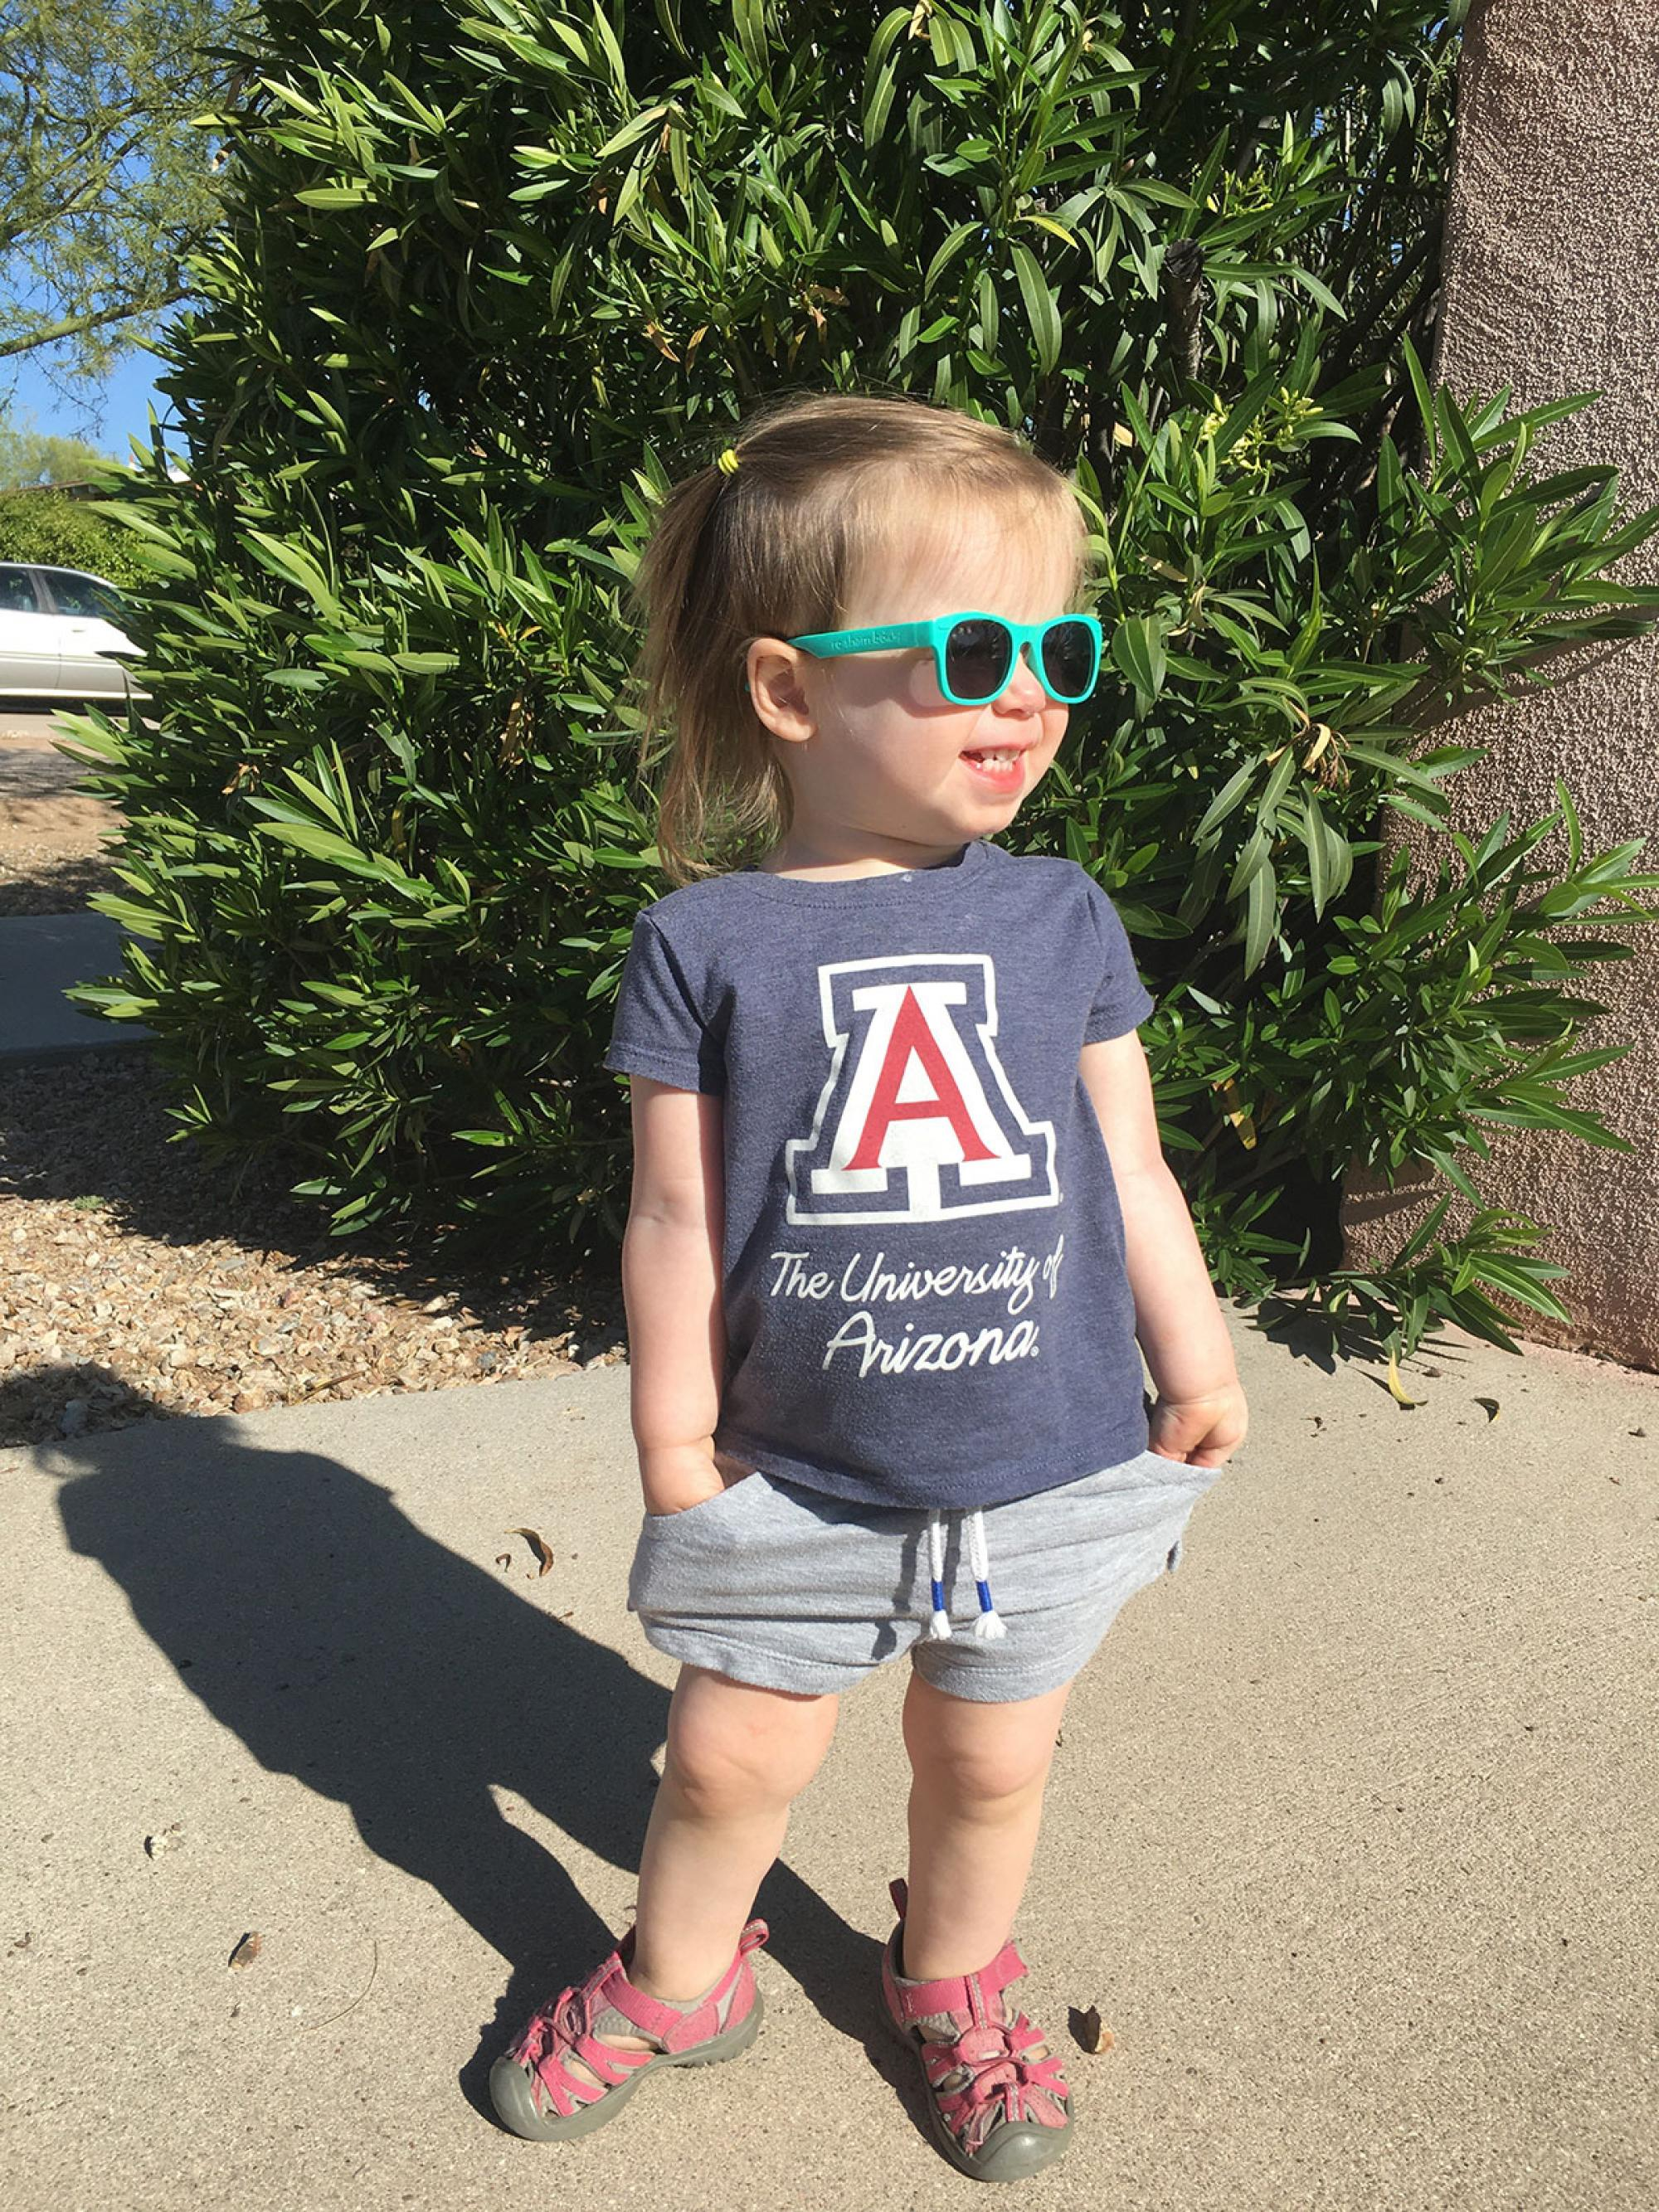 Future Wildcat, class of 2040: My daughter's name is Irene Tenen. She is 21 months old. My wife took this photo, which we think is amazing – what parent wouldn't? – David Tenen, human resources specialist, Workforce Systems